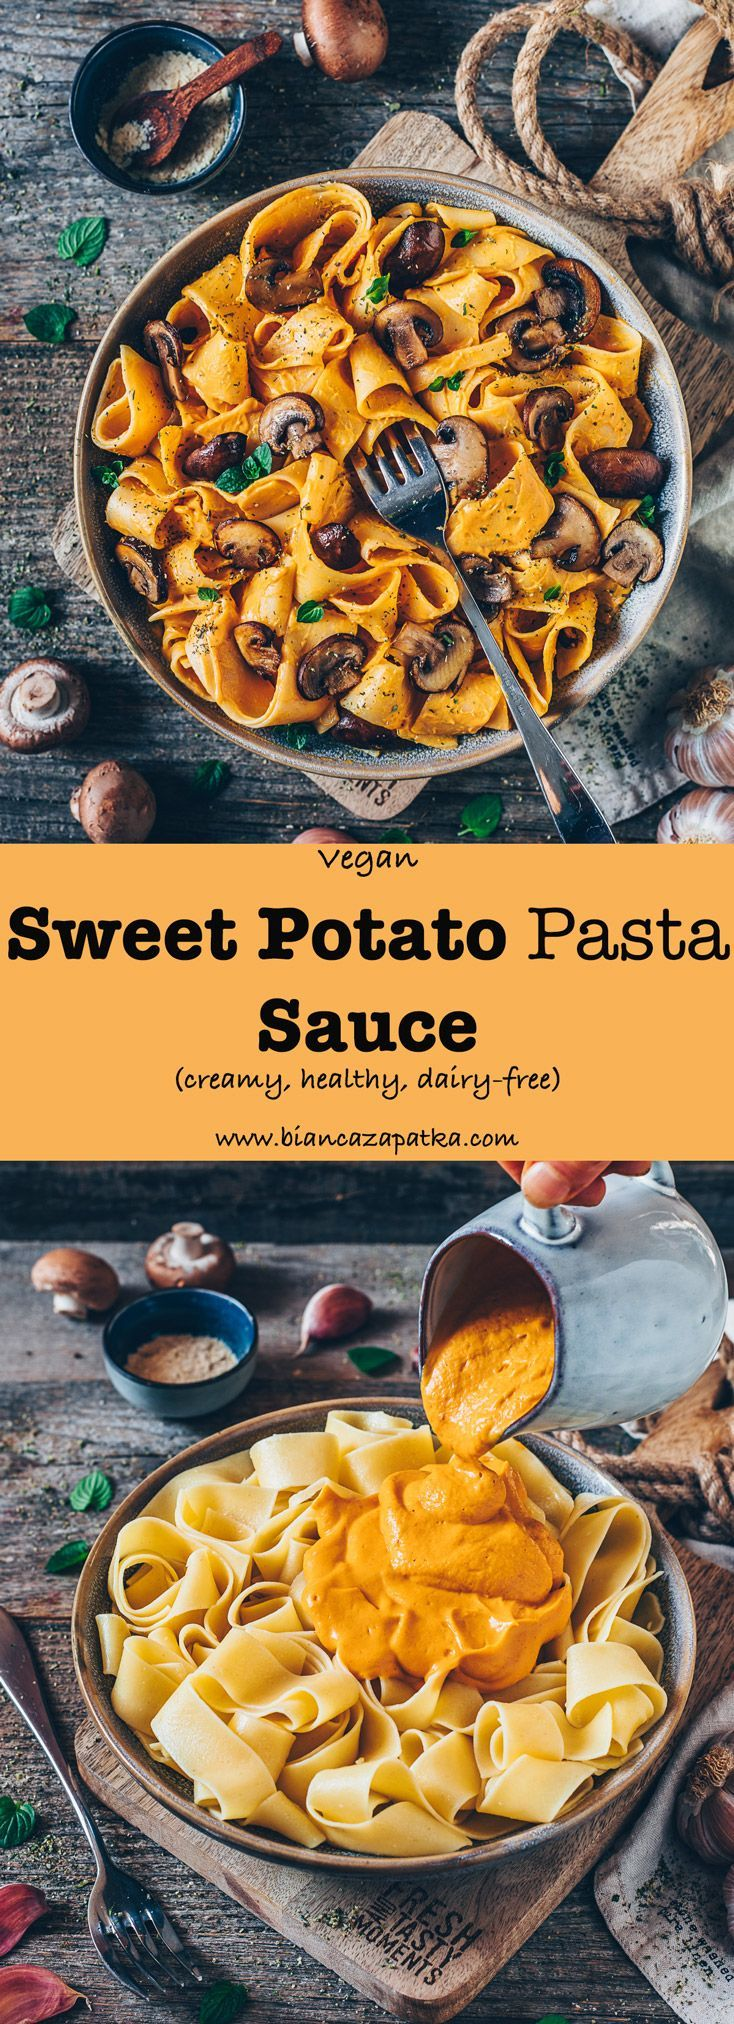 Vegan Sweet Potato Pasta Sauce (creamy, cheesy